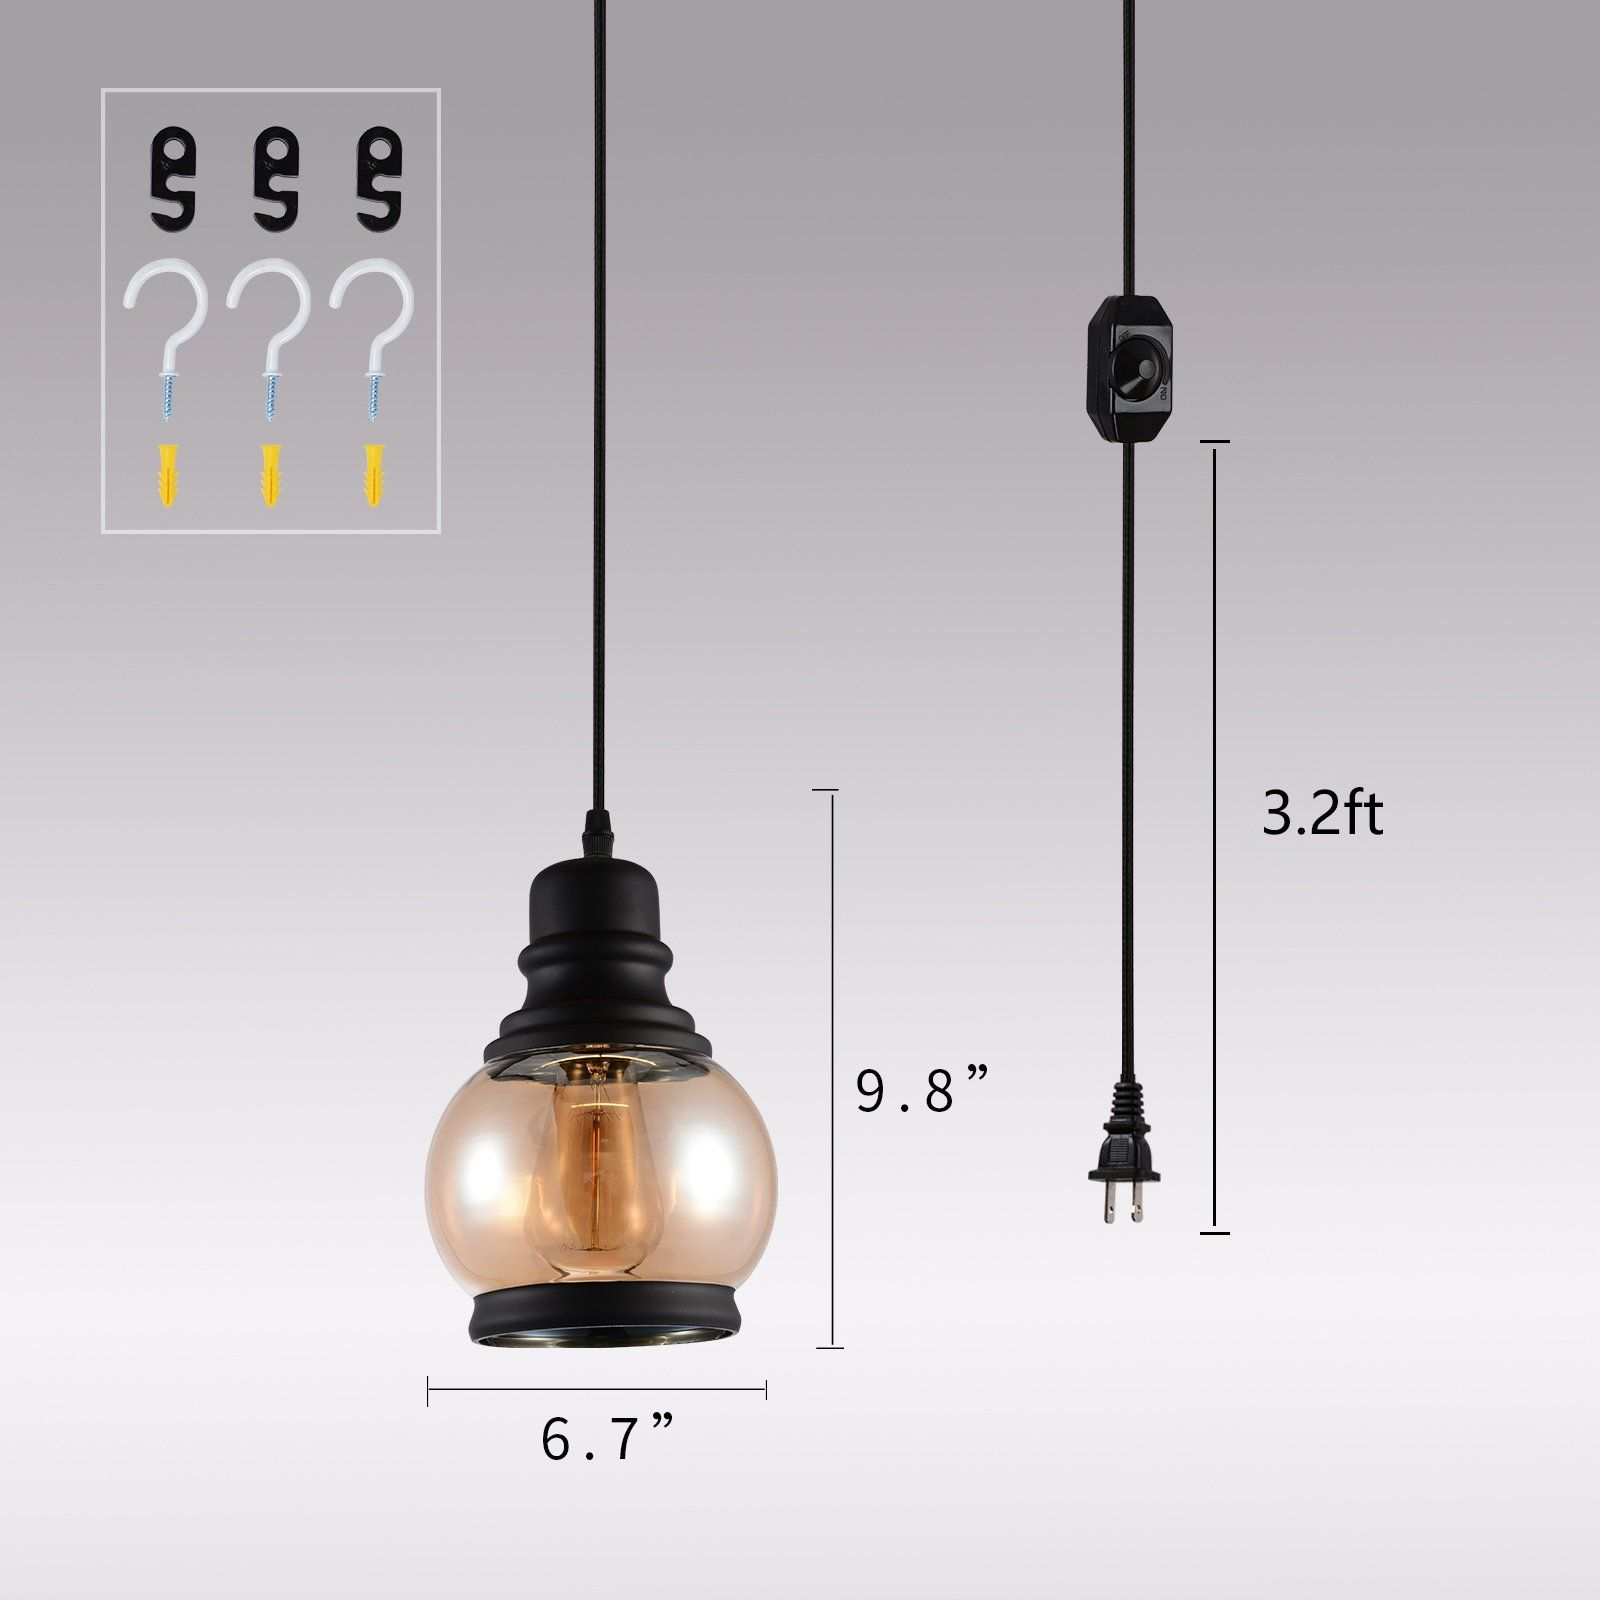 Hmvpl Glass Hanging Lights With Plug In Cord And On Off Dimmer Switch Updated Industrial Edison Vintage Swa Swag Chandelier Ceiling Lamp Pendant Light Fixtures